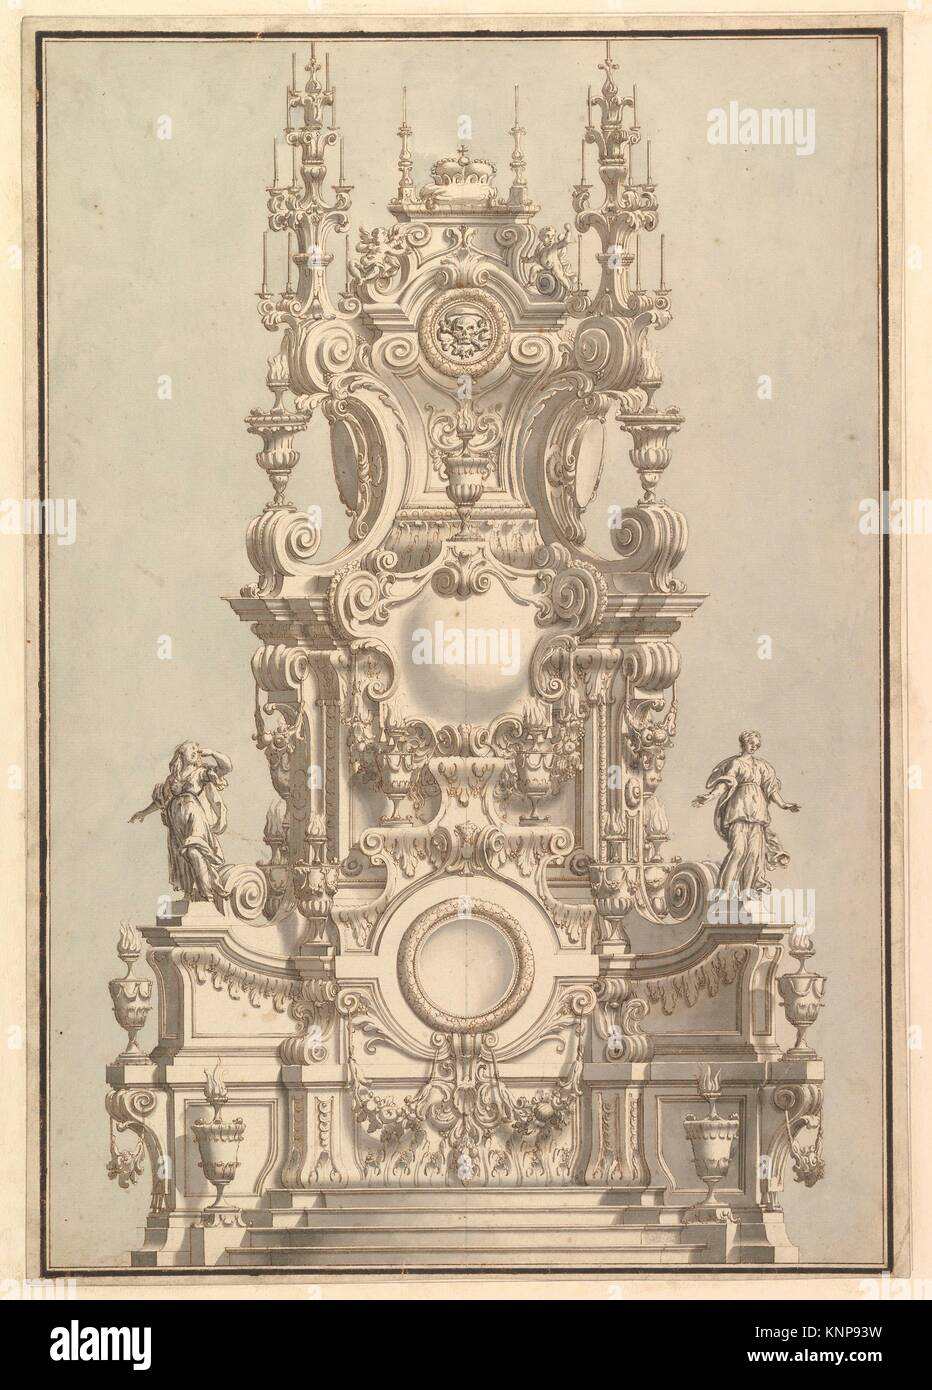 Elevation of a Catafalque, Surmounted by a Royal Crown, with Scull and Cross Bones in Wreath-Encircled Cartouche - Stock Image